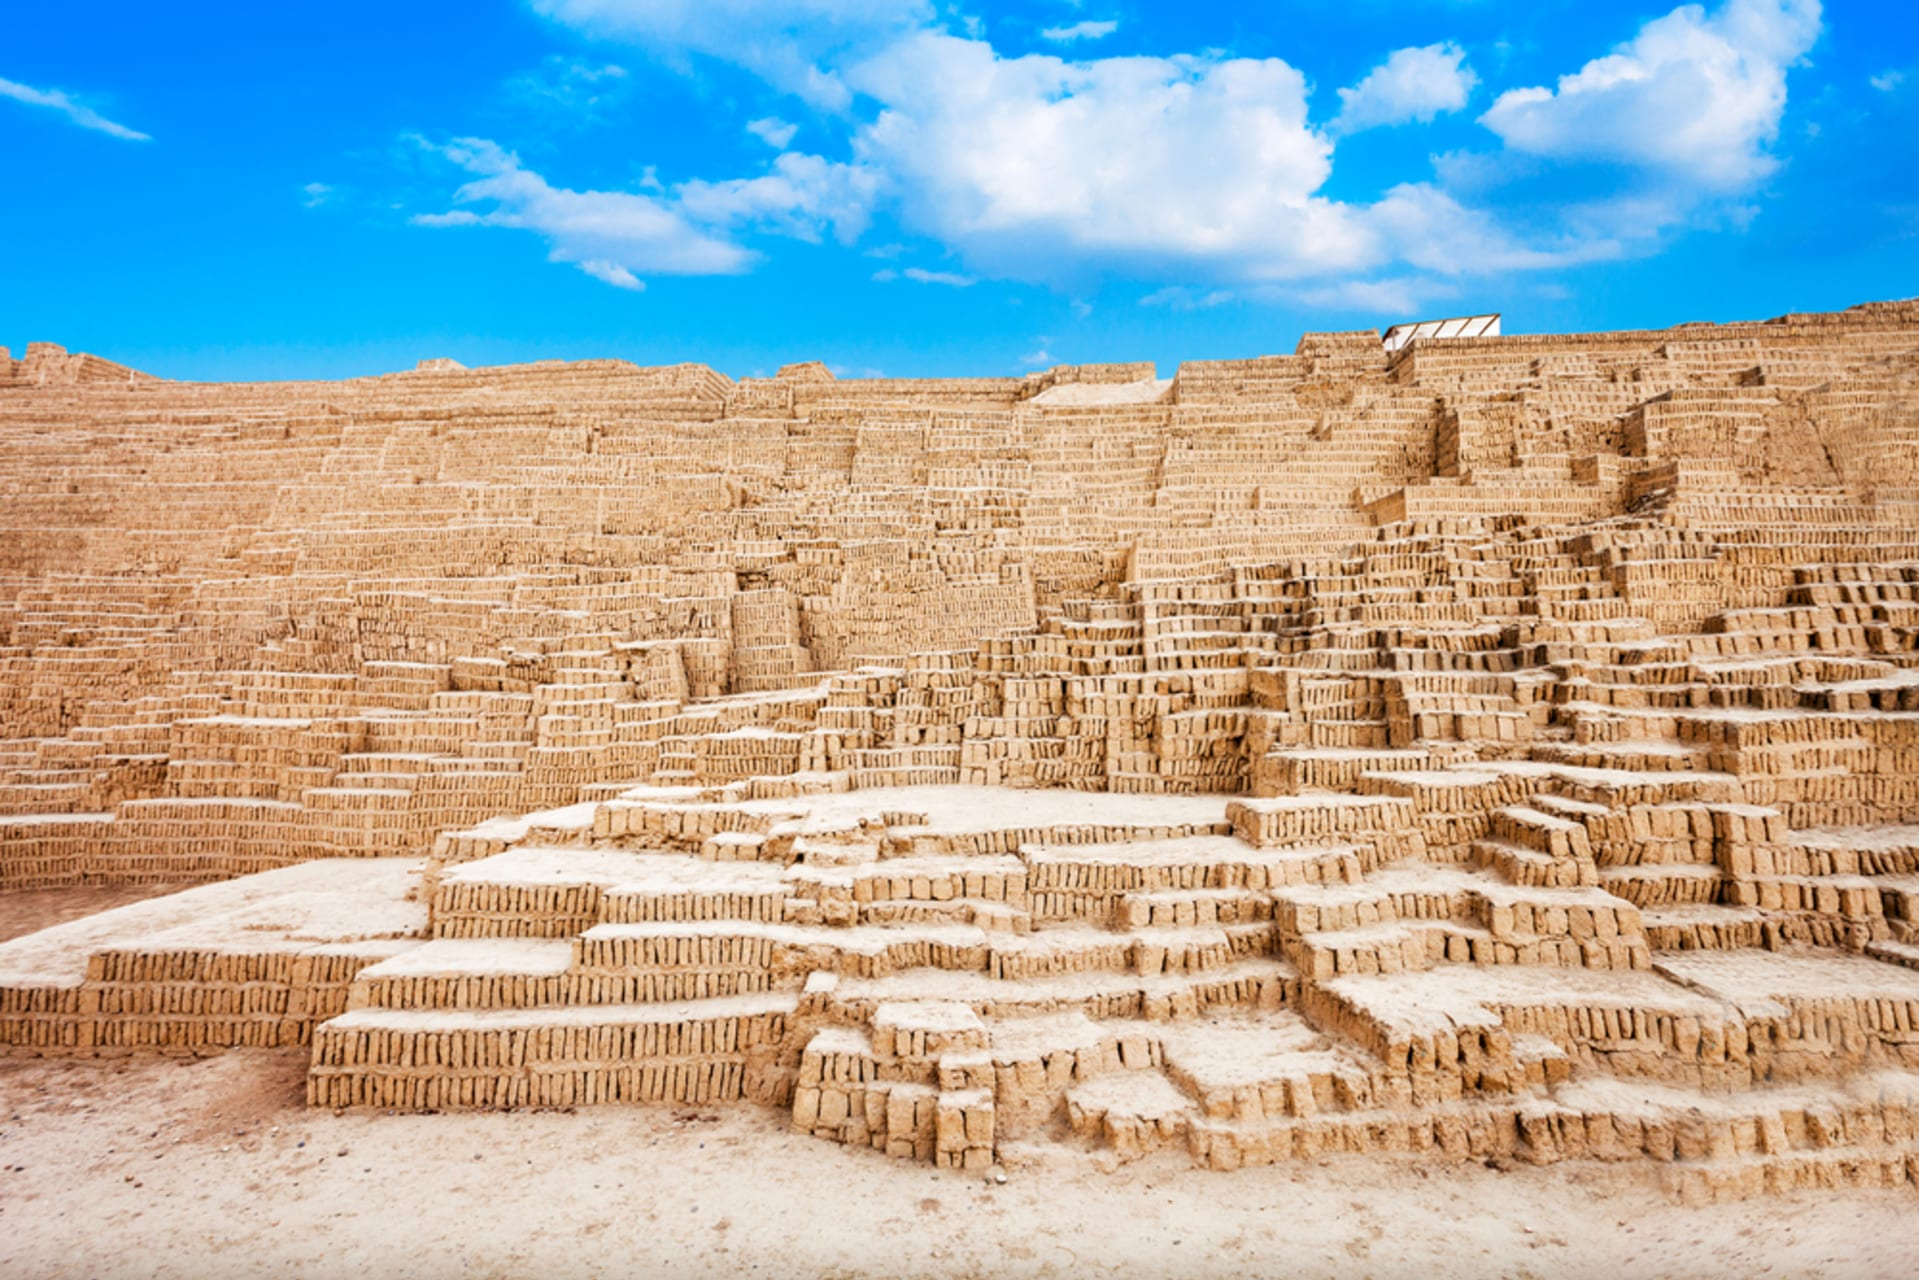 Lima - Pre-hispanic Lima: pre-Incan archaeological sites in the modern capital of Peru